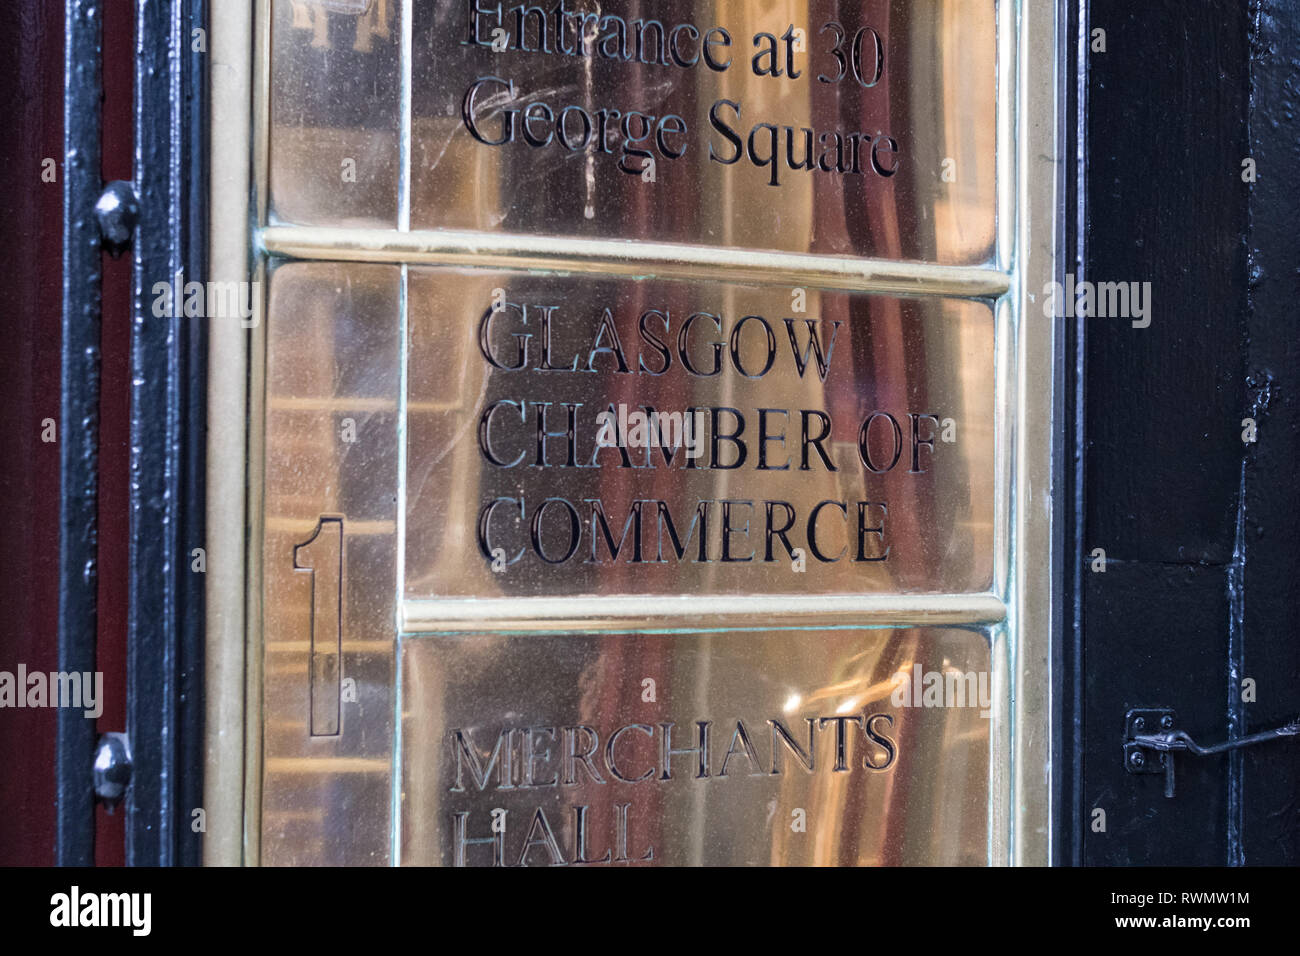 Plaque à la Chambre de commerce de Glasgow, George Square, (West George Street panneau d'entrée), Glasgow, Écosse, Royaume-Uni Photo Stock